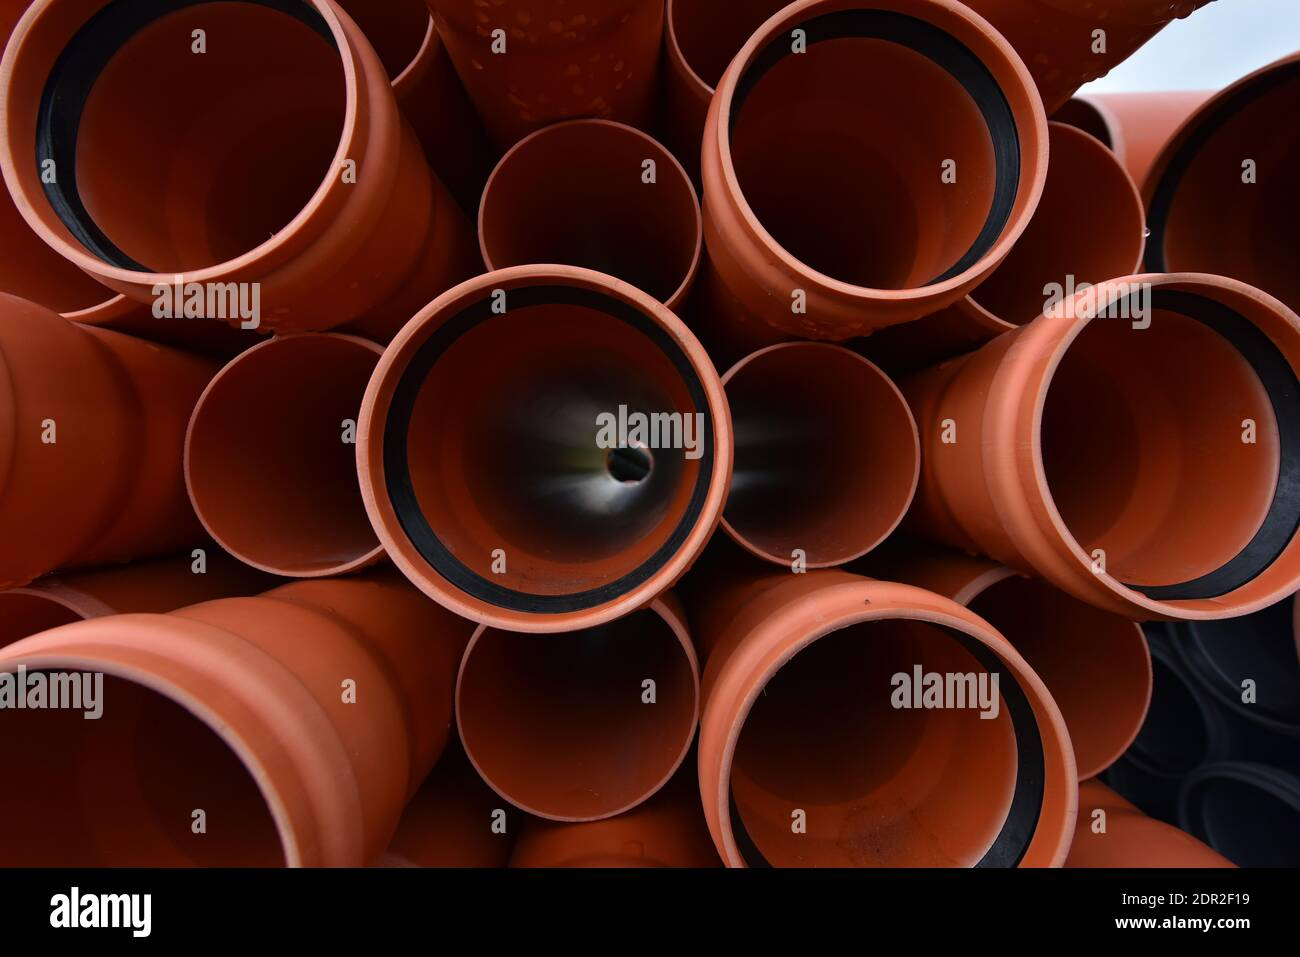 Large orange plastic pipes for sewerage system. Stock Photo